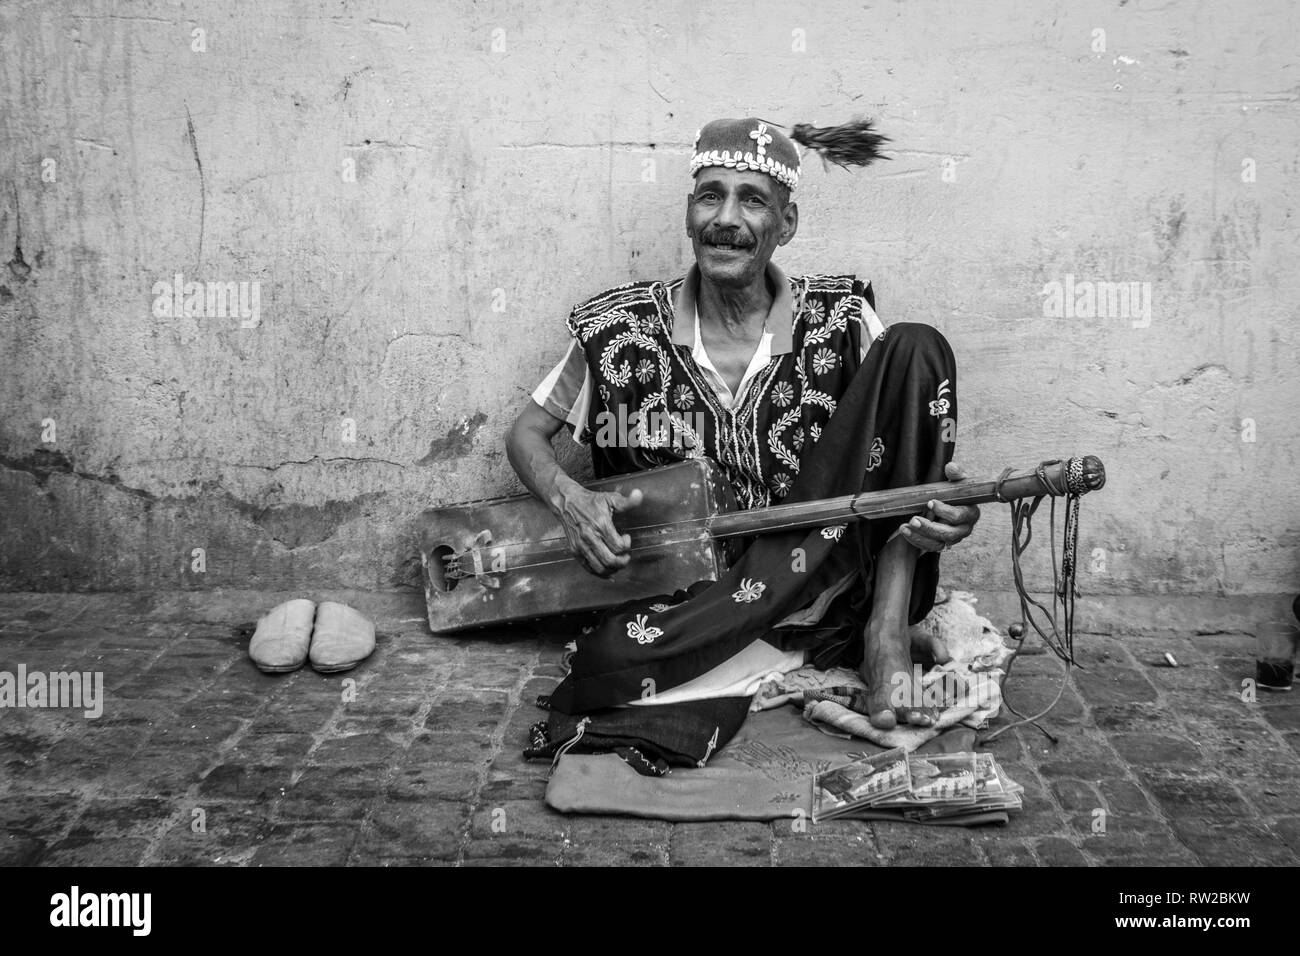 Man spins tassle of his fez around busking with his sintir on the streets of Marrekech, Morocco - Stock Image